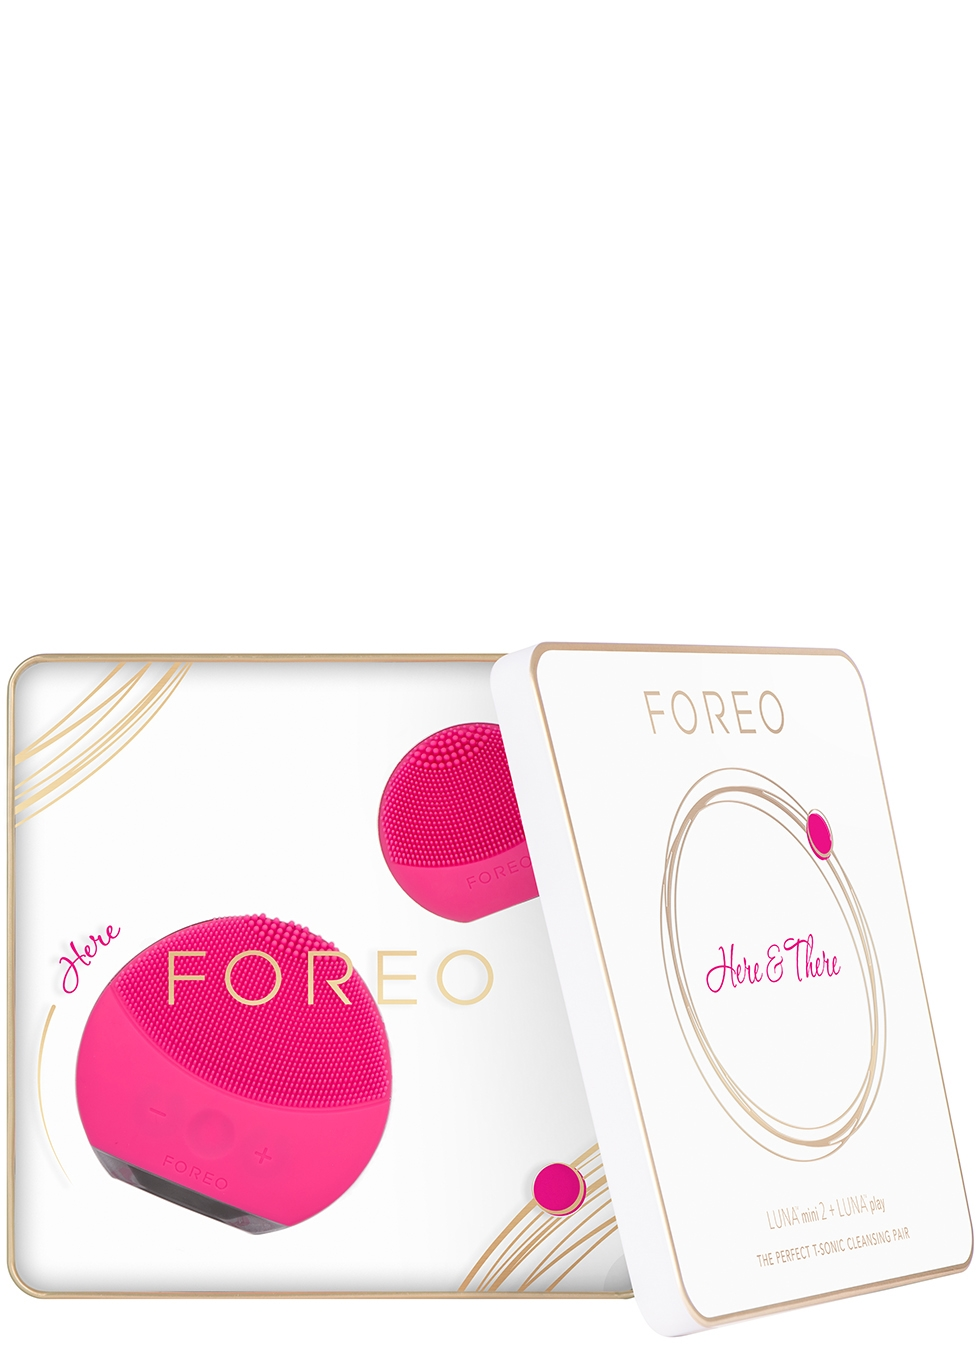 Here & There Gift Set - FOREO